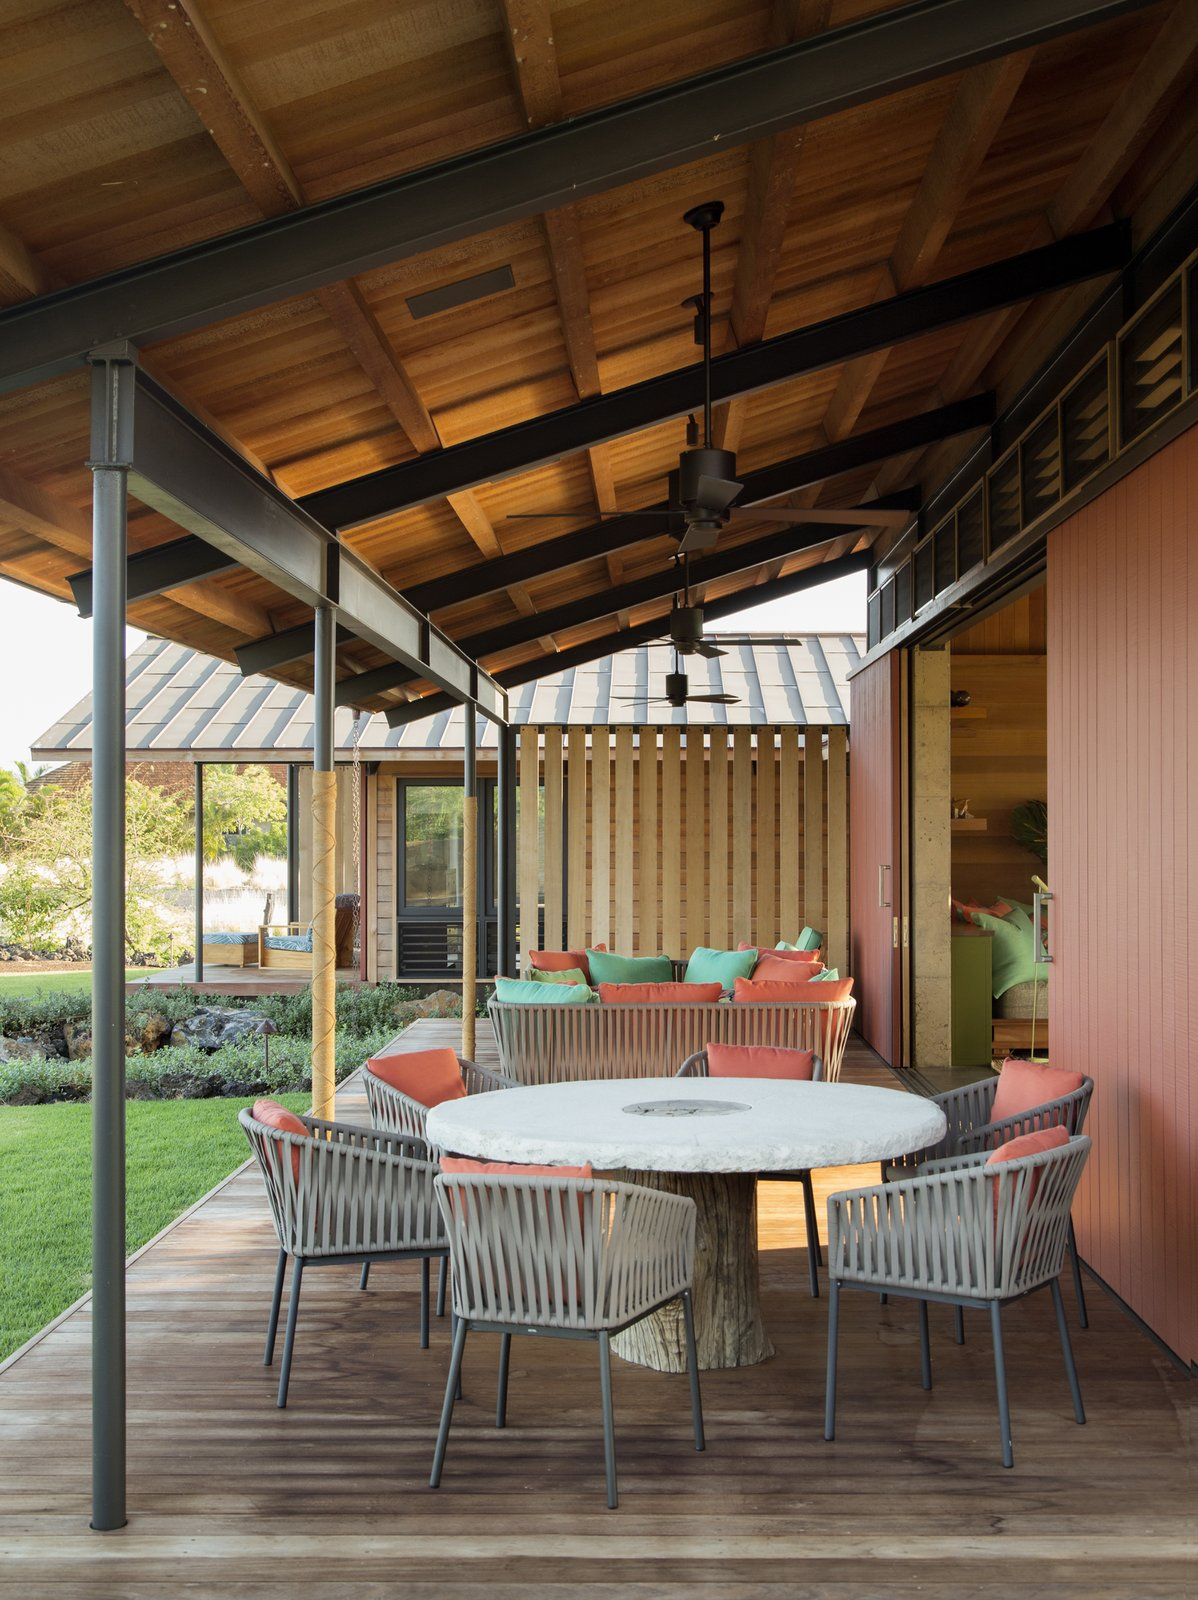 Outdoor, Back Yard, Grass, Small Patio, Porch, Deck, Wood Patio, Porch, Deck, Decking Patio, Porch, Deck, and Hanging Lighting  Photo 8 of 20 in An Incredible Home in Hawaii That's As Much Fun As Summer Camp